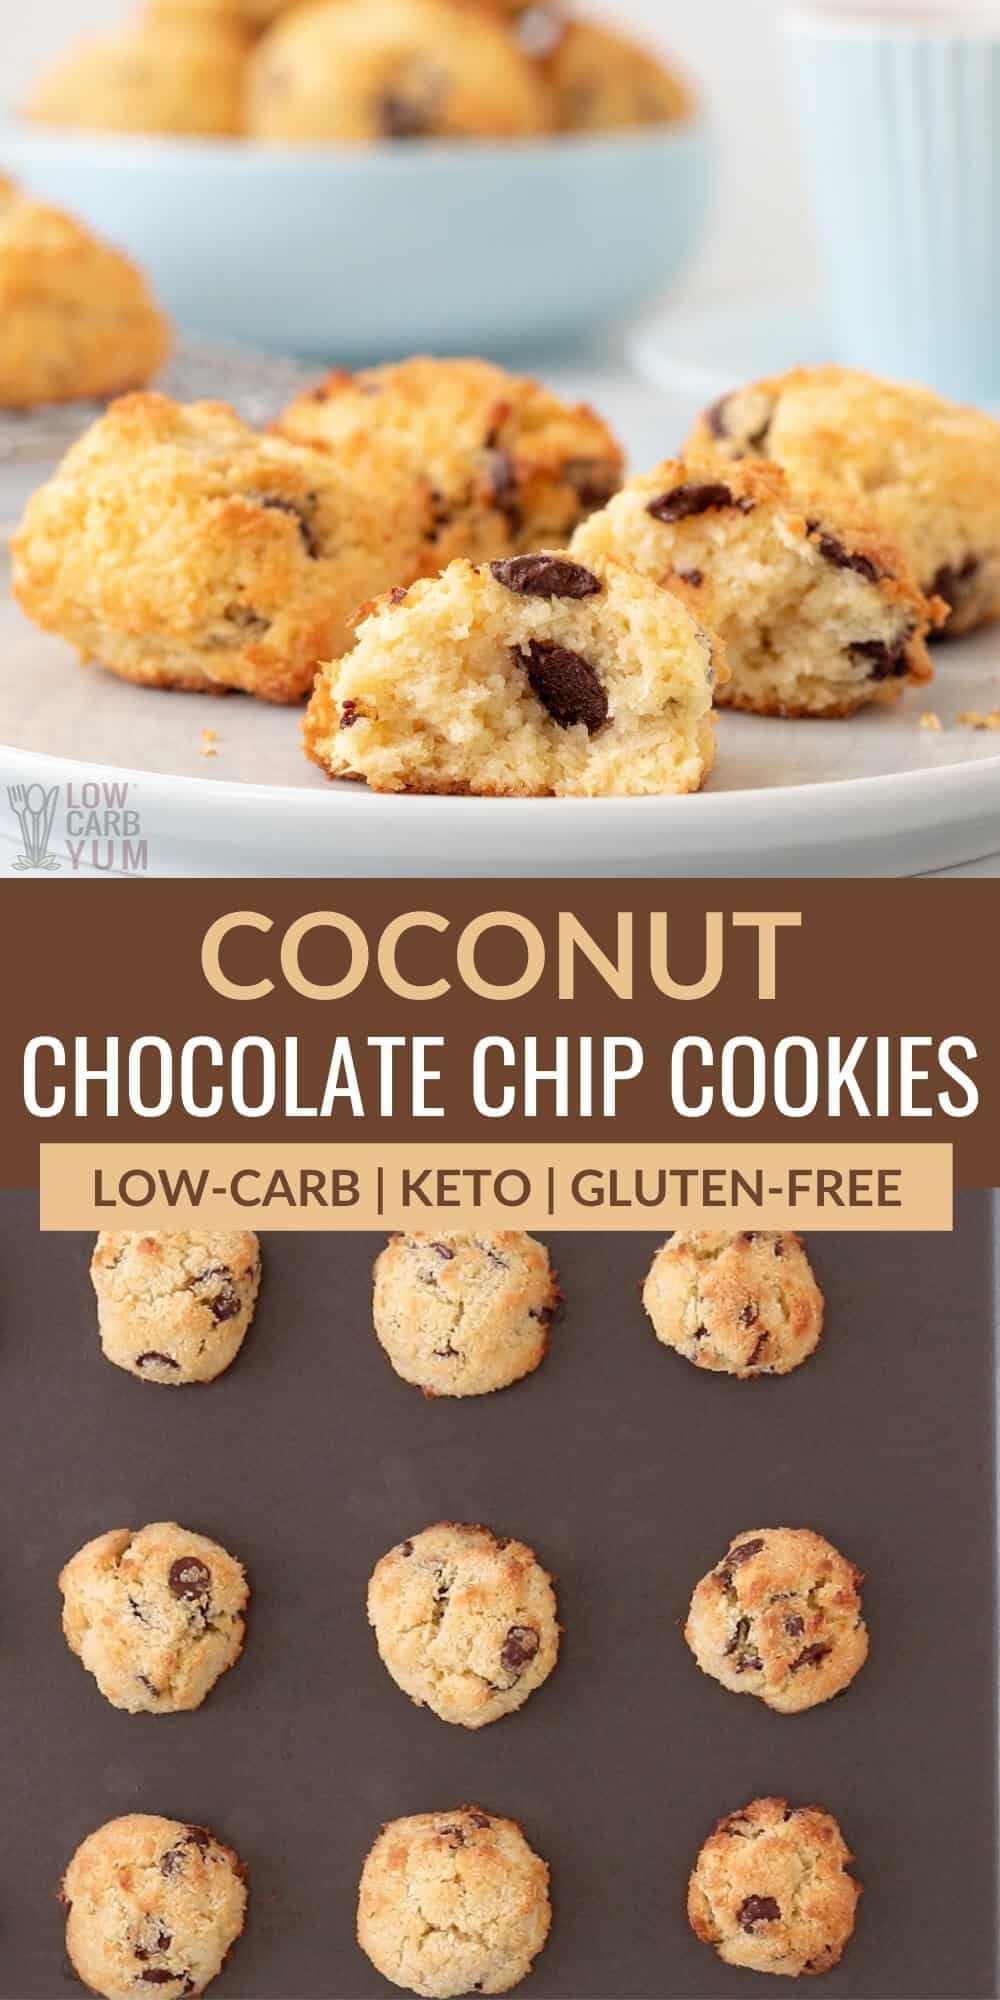 coconut chocolate chip cookies pinterest image